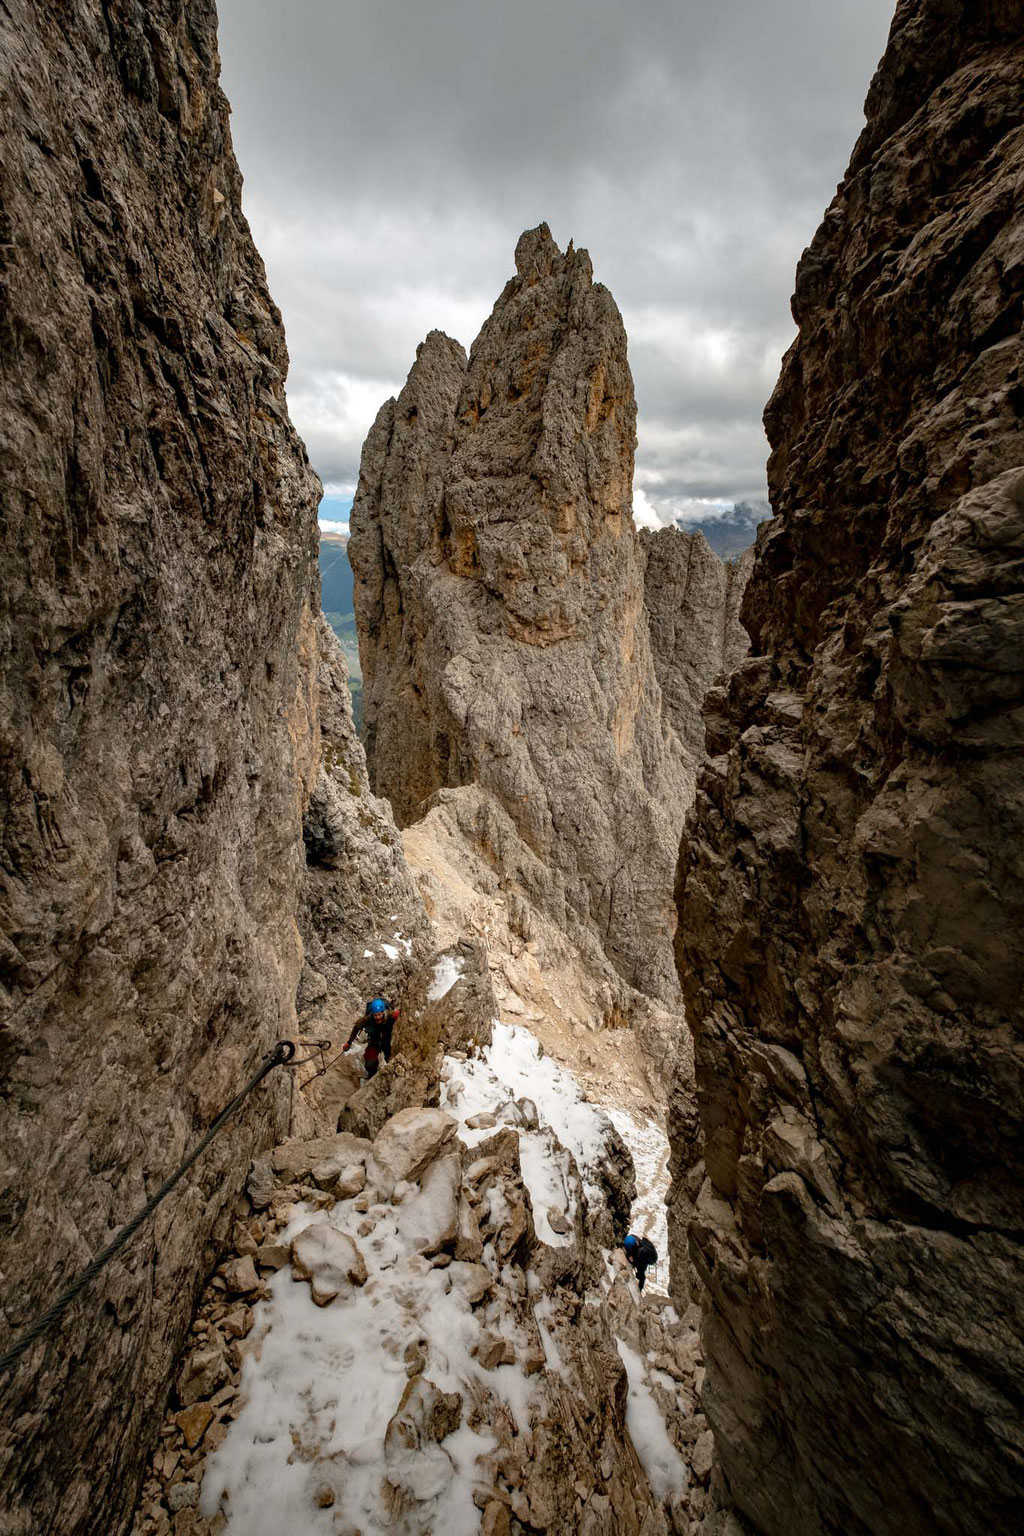 The views along the via ferrata as you climb higher